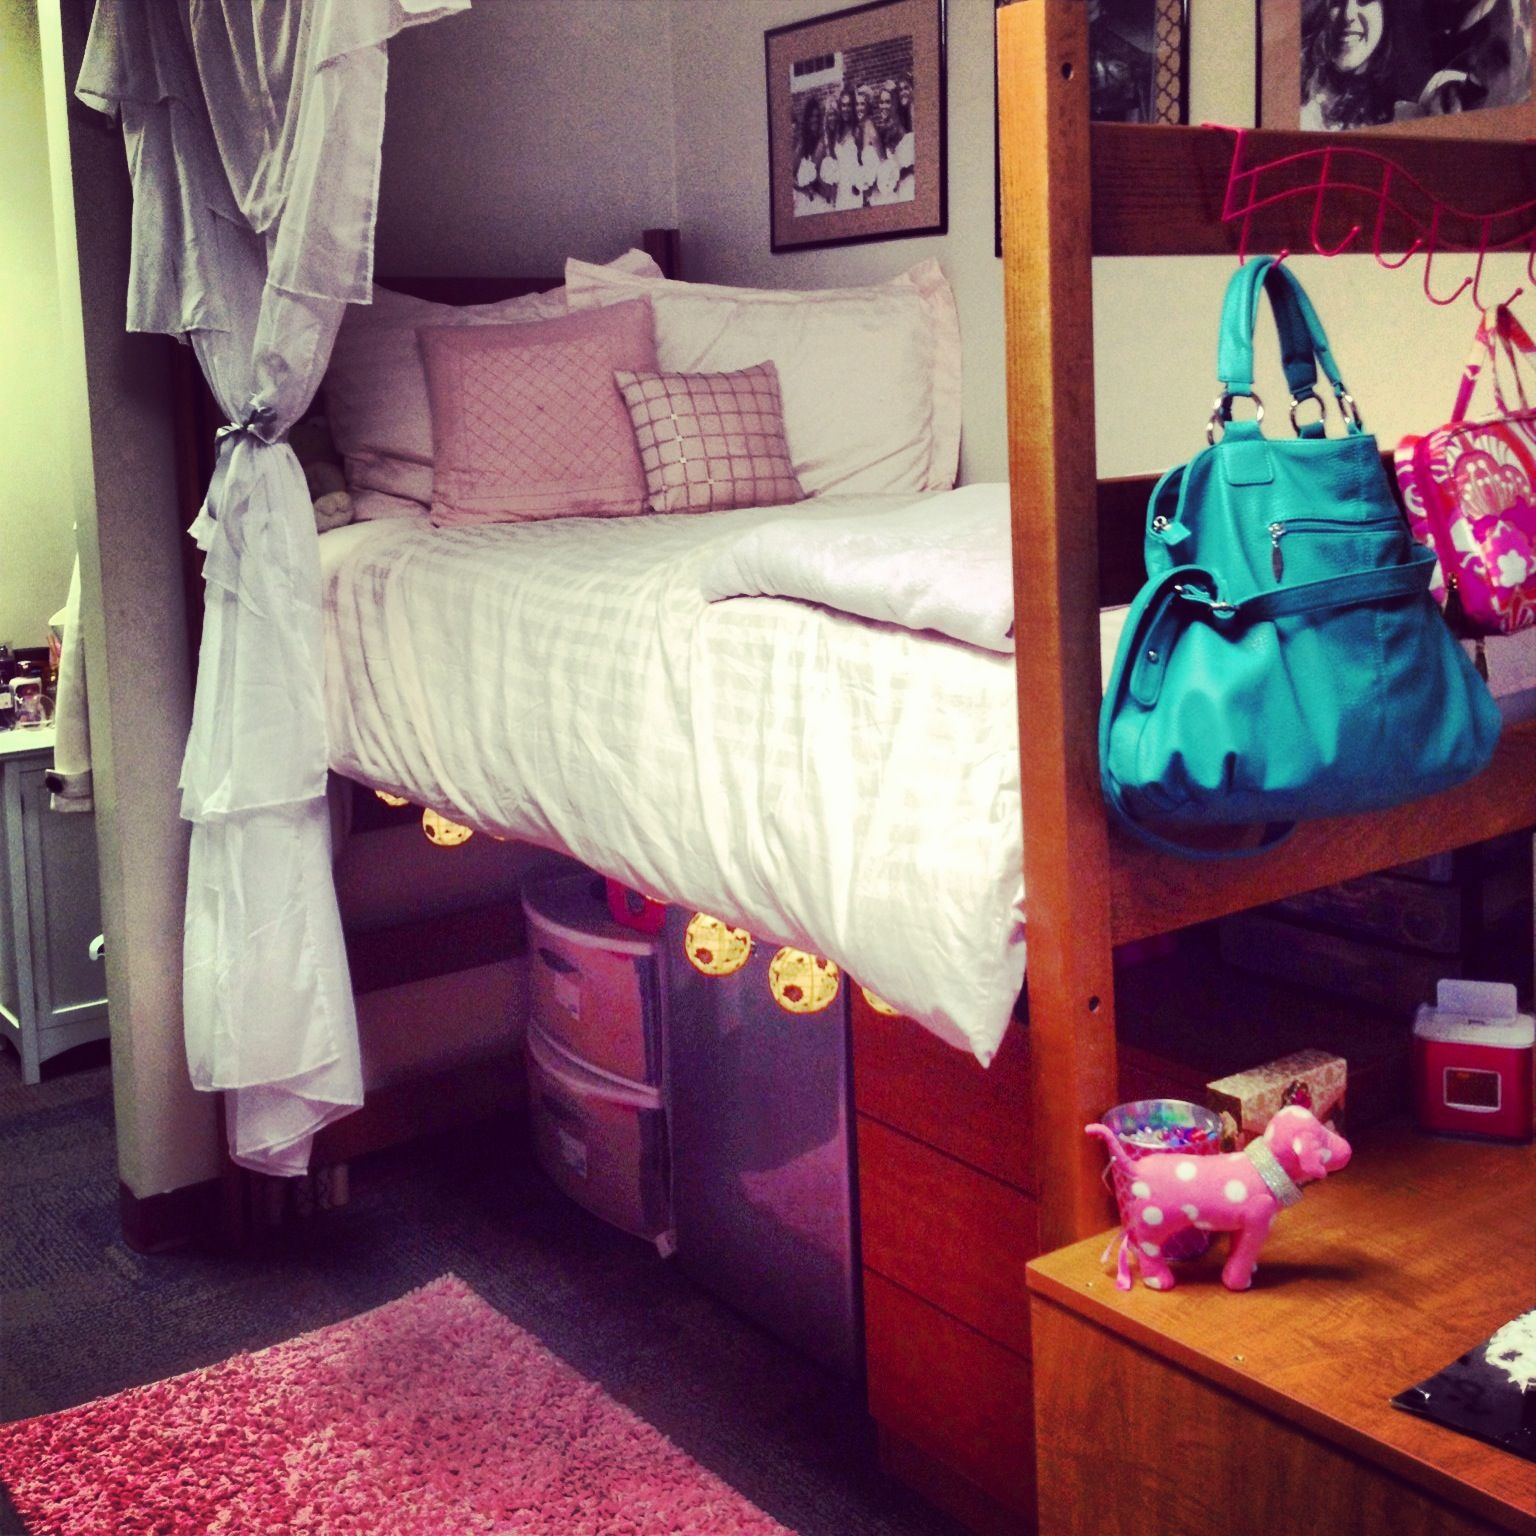 10 ways to decorate your dorm room her campus - Dorm room bathroom decorating ideas ...